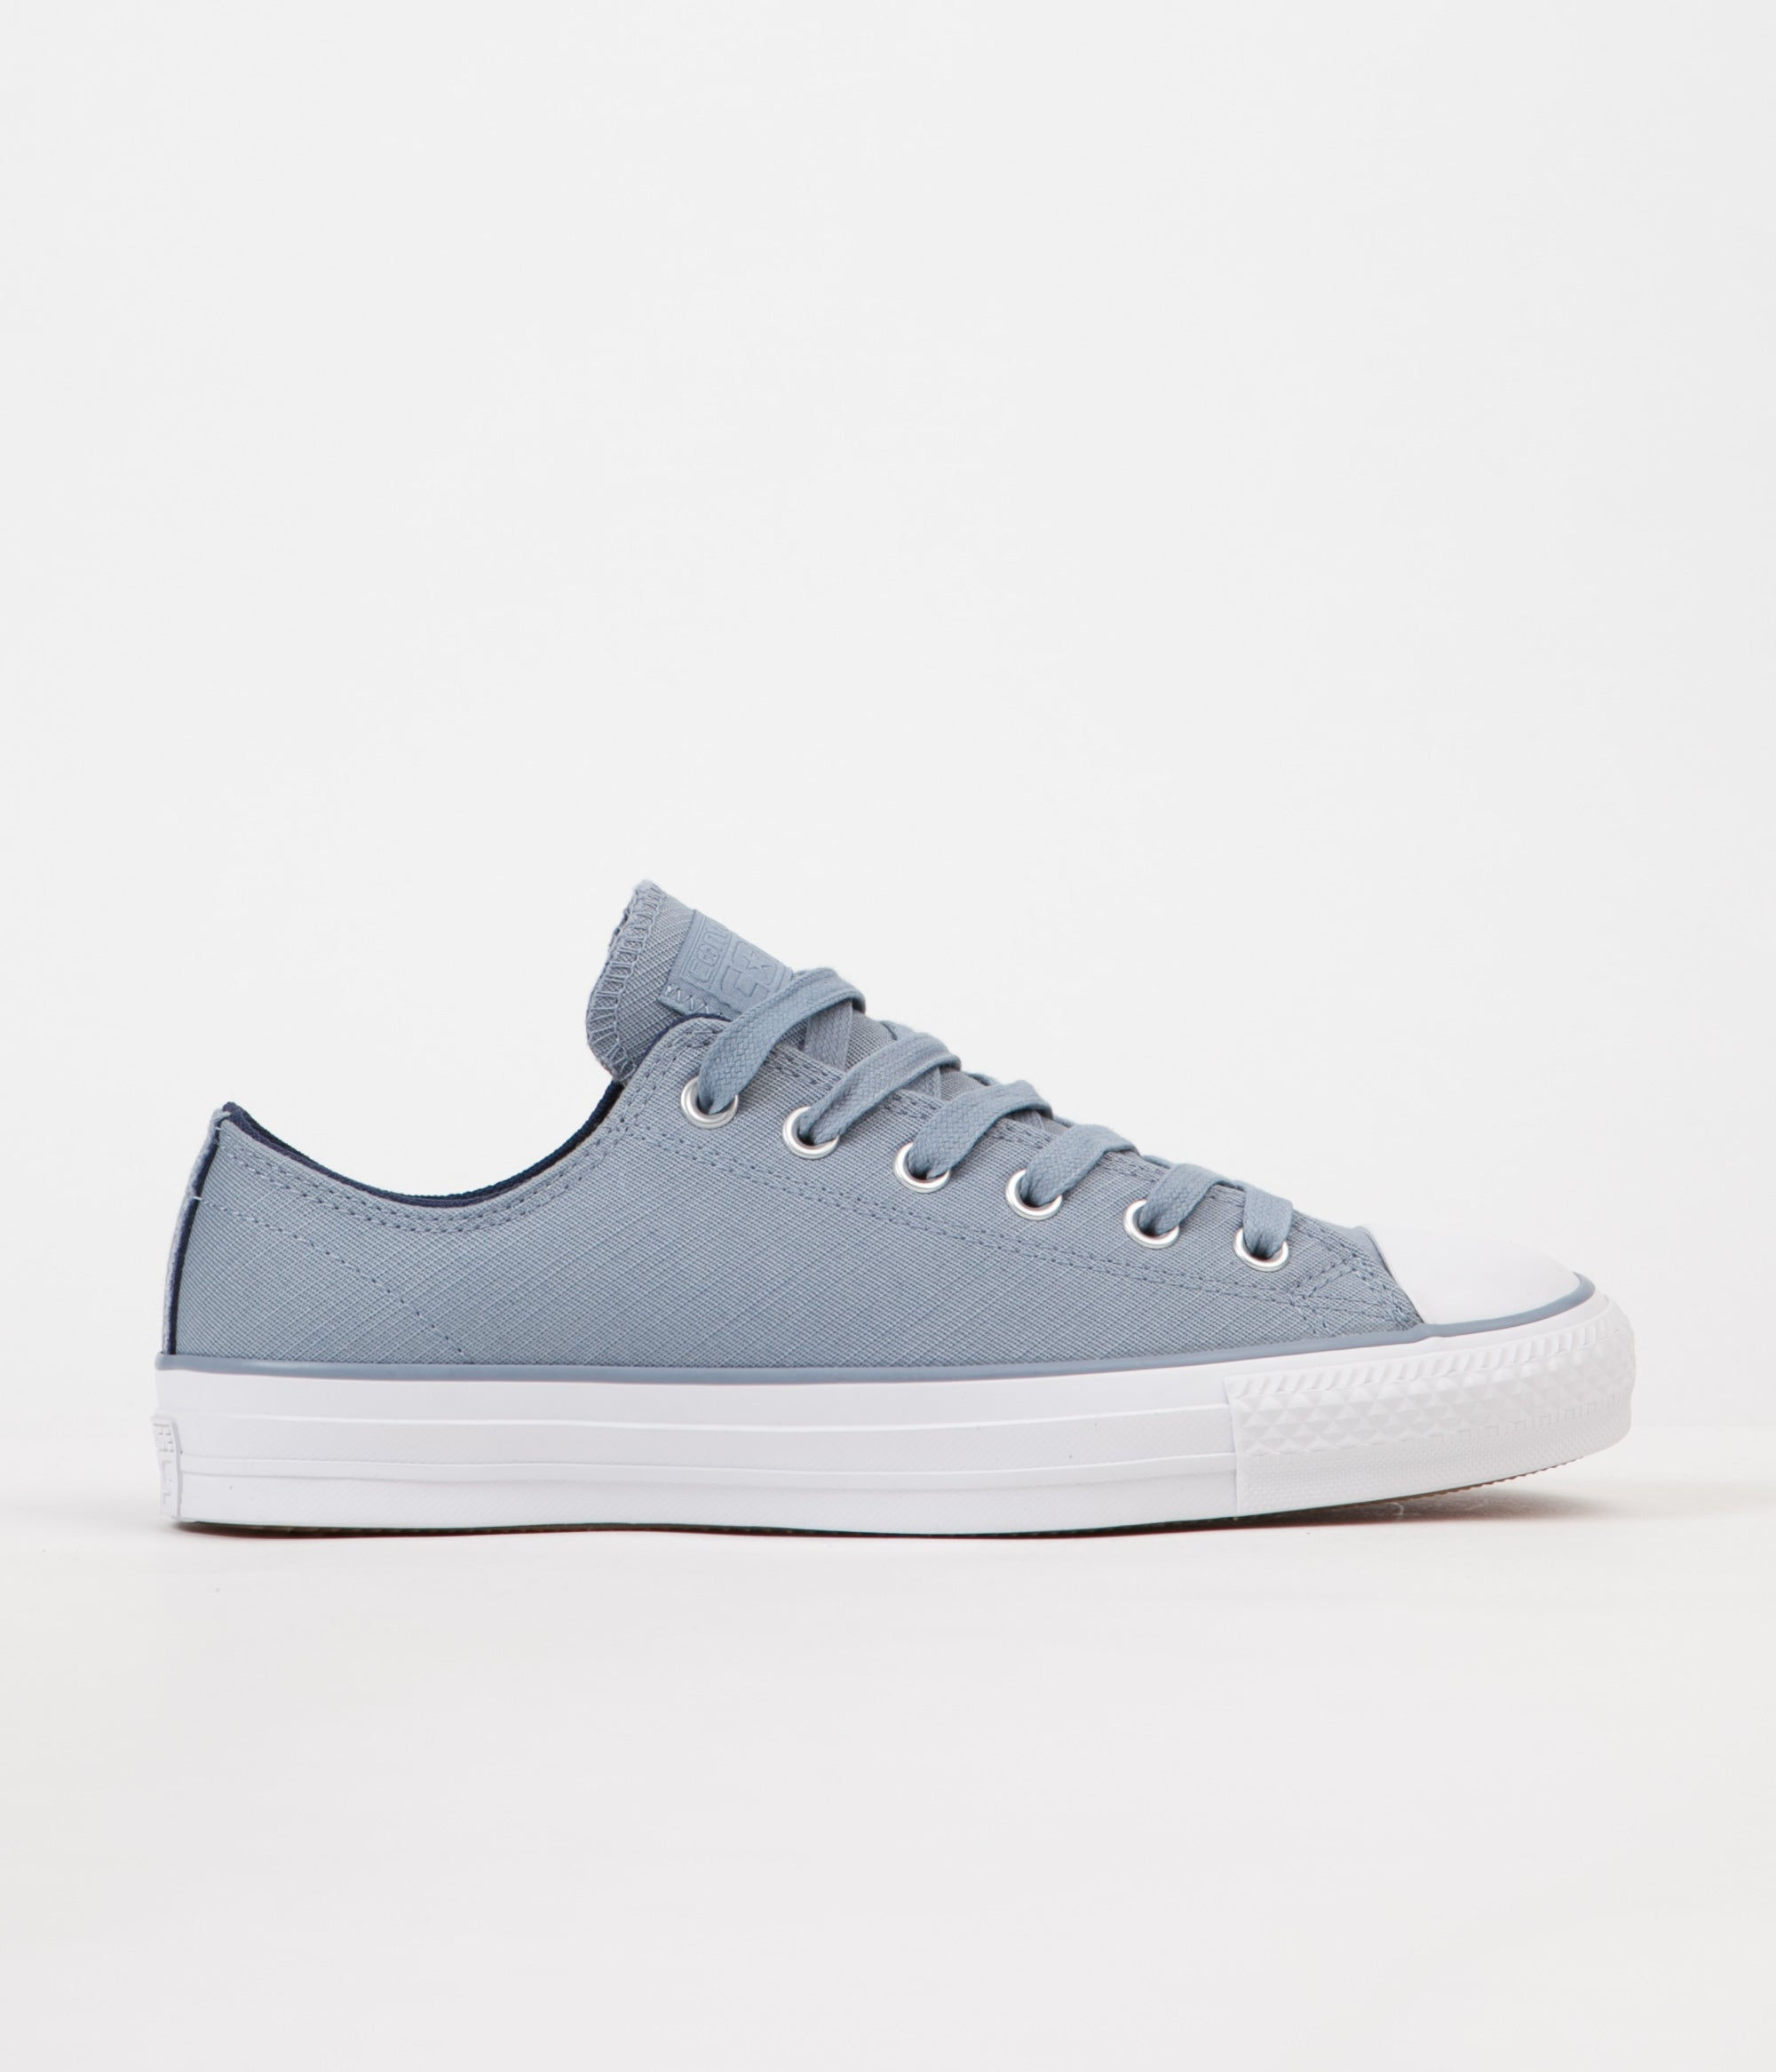 089203e8c32d Converse CTAS Pro OX Shoes - Blue Slate   Midnight Navy